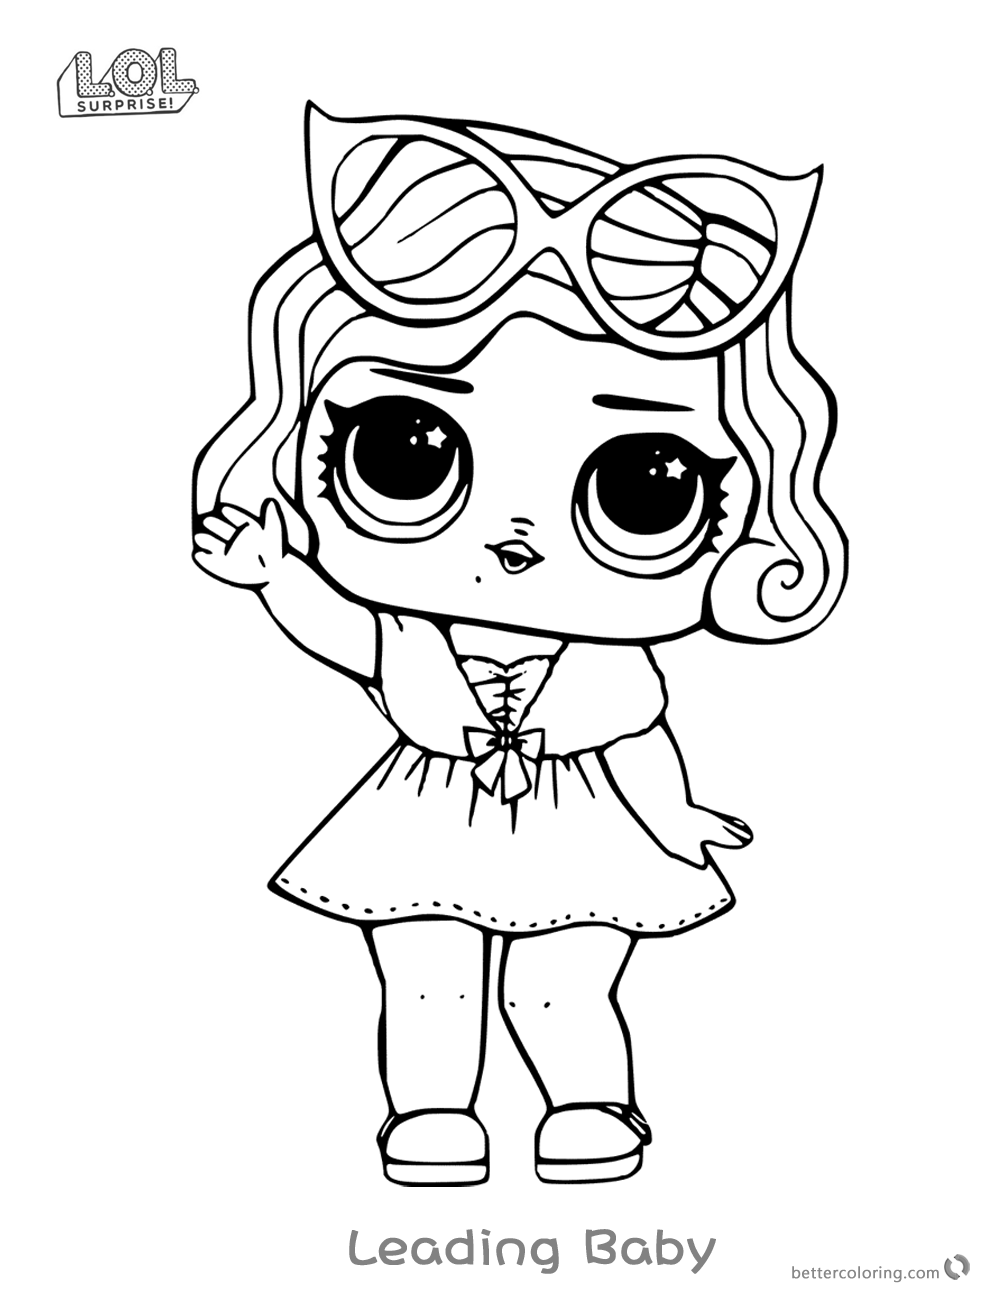 Leading Baby From Lol Surprise Doll Coloring Pages Free